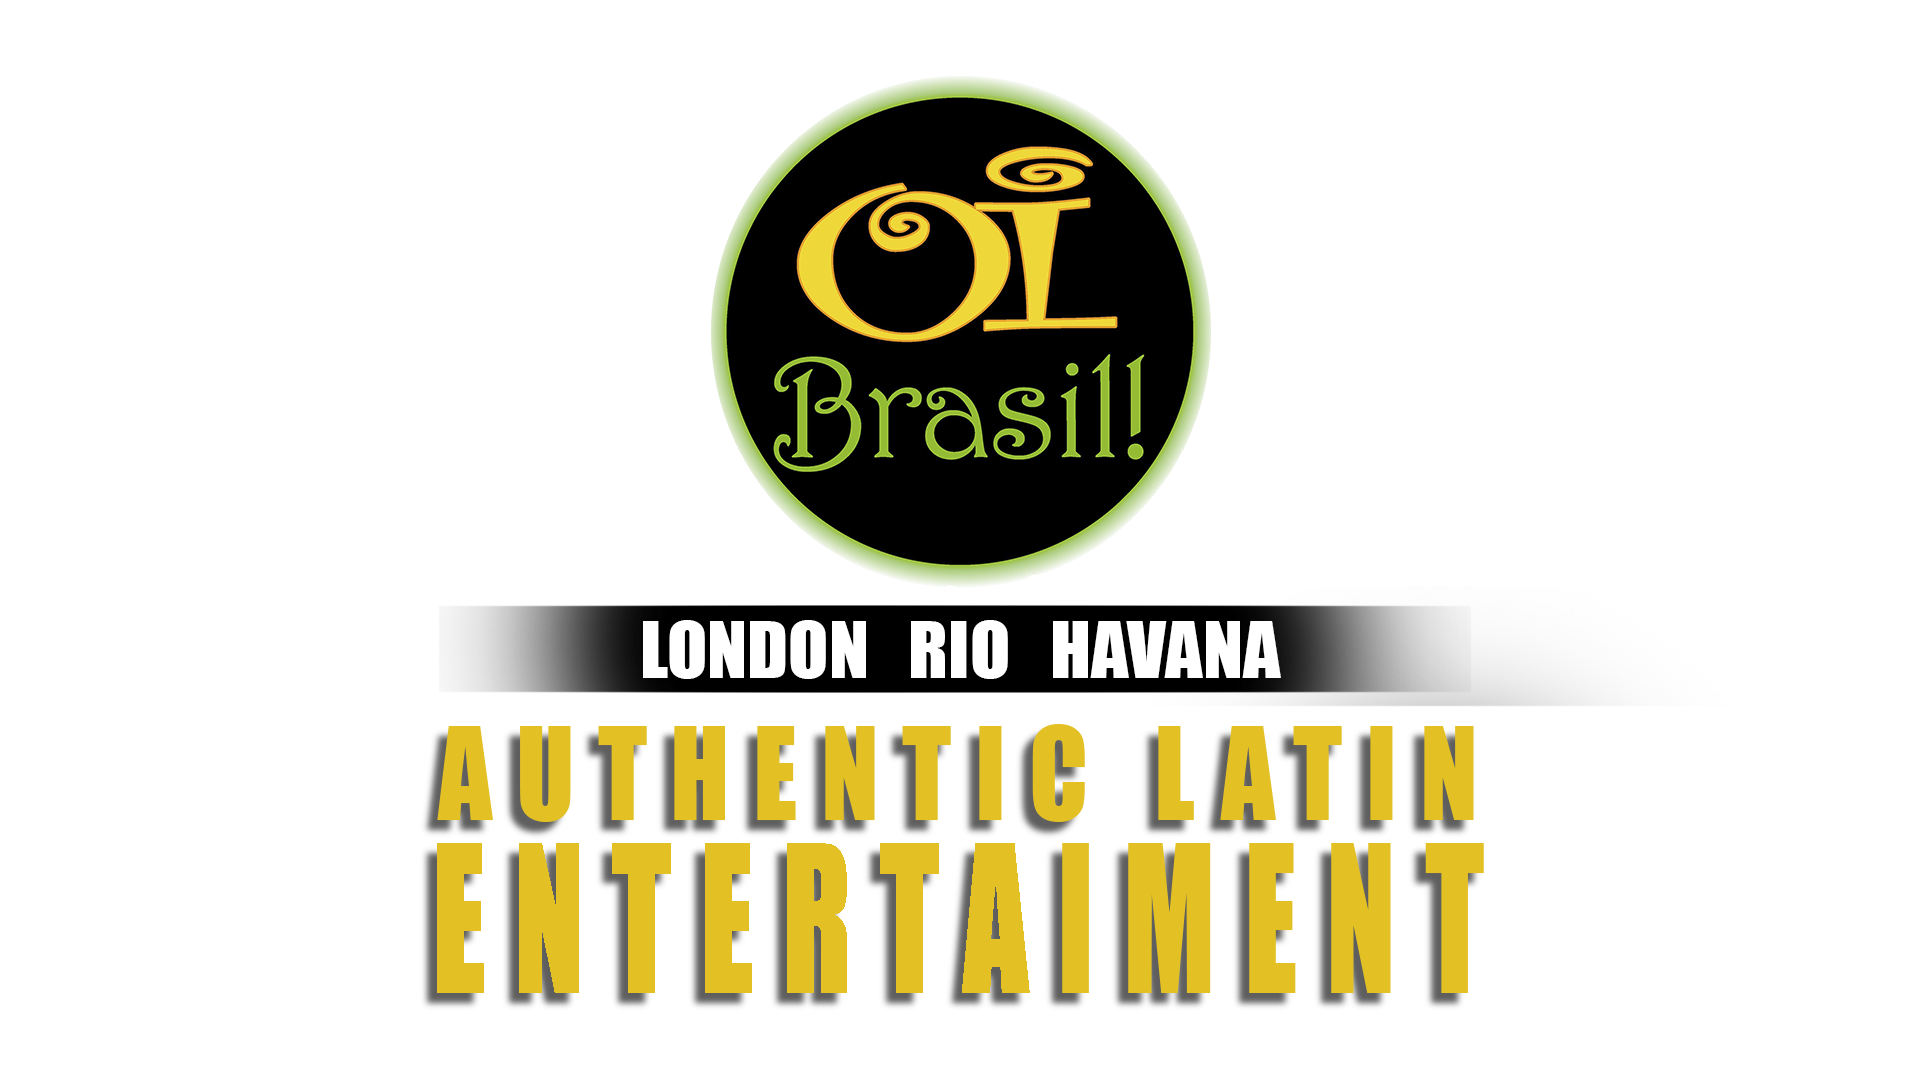 Oi Brasil - Brazilian & Cuban Shows London